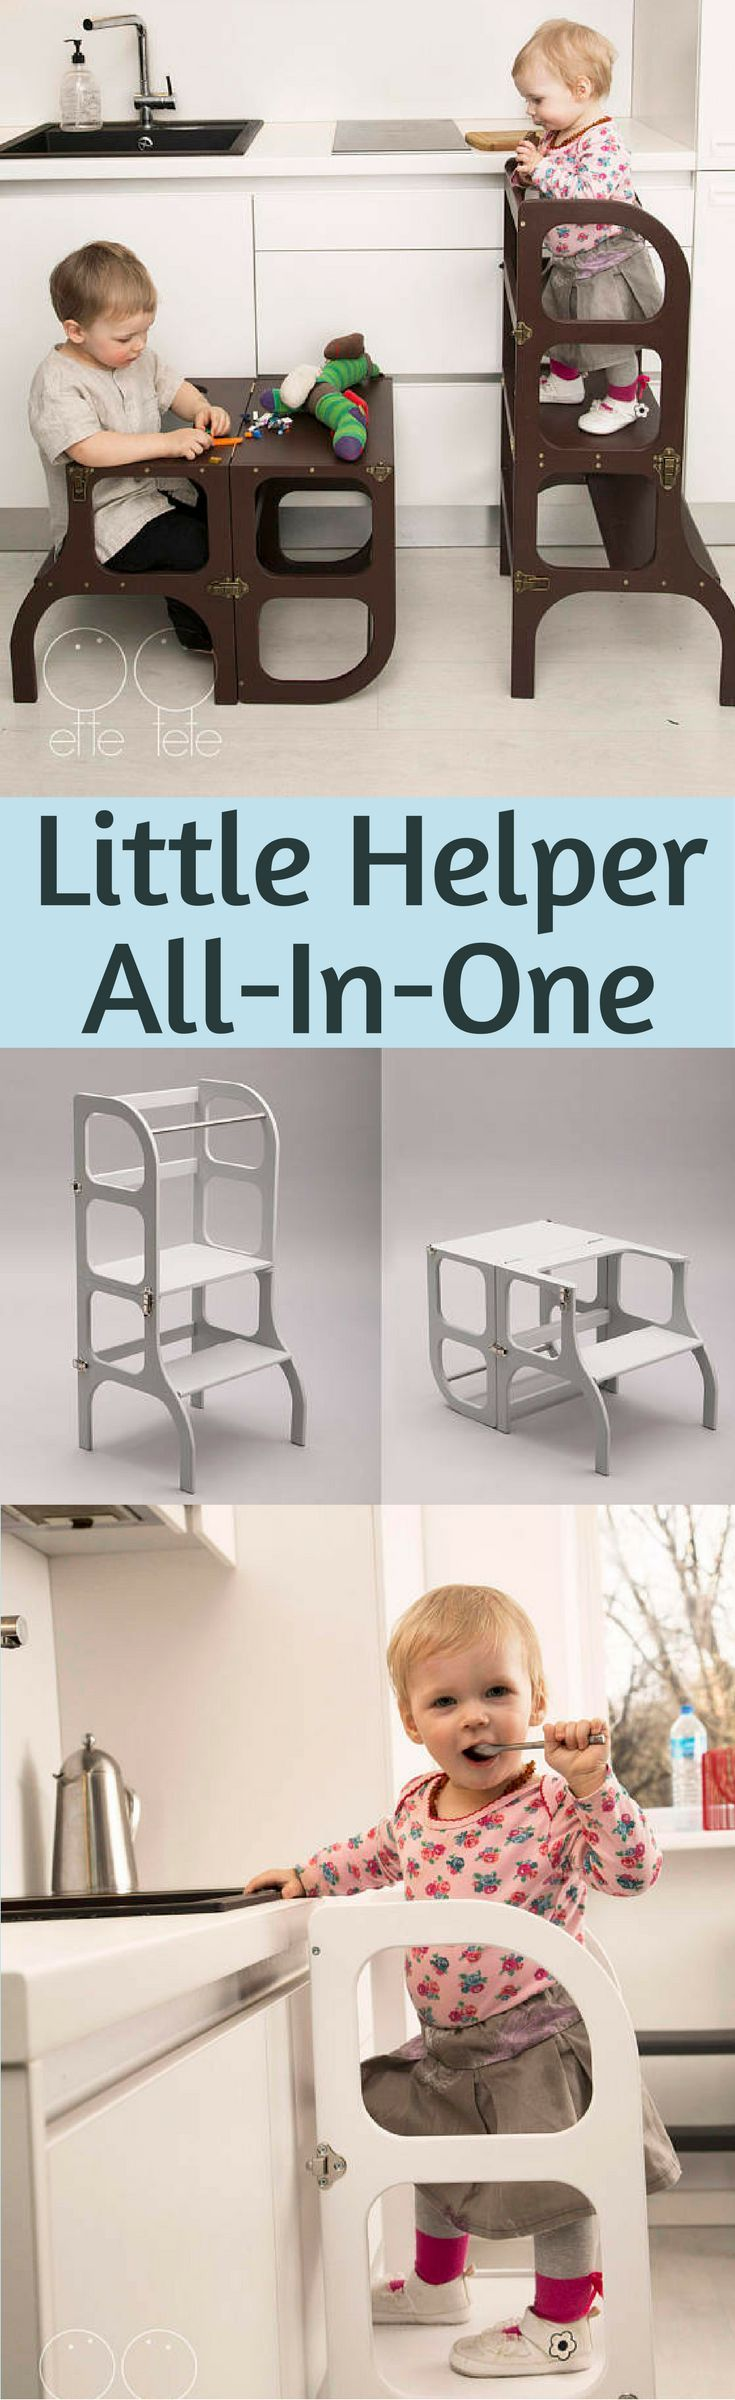 AMAZING ideas to make life easier! Convertible Toddler Safety Stool and Toddler Activity Table, Toddler Table and Chairs Set, Toddler Drawing Table, Coloring Table, Little Helper Toddler Step Stool, Baby Proof, Toddler Kitchen Safety  Tips, Toddler Step Ladder, First Birthday Gift Ideas, Toddler Boy Gift Ideas, Toddler Girl Gift Ideas #ad #affiliatelink